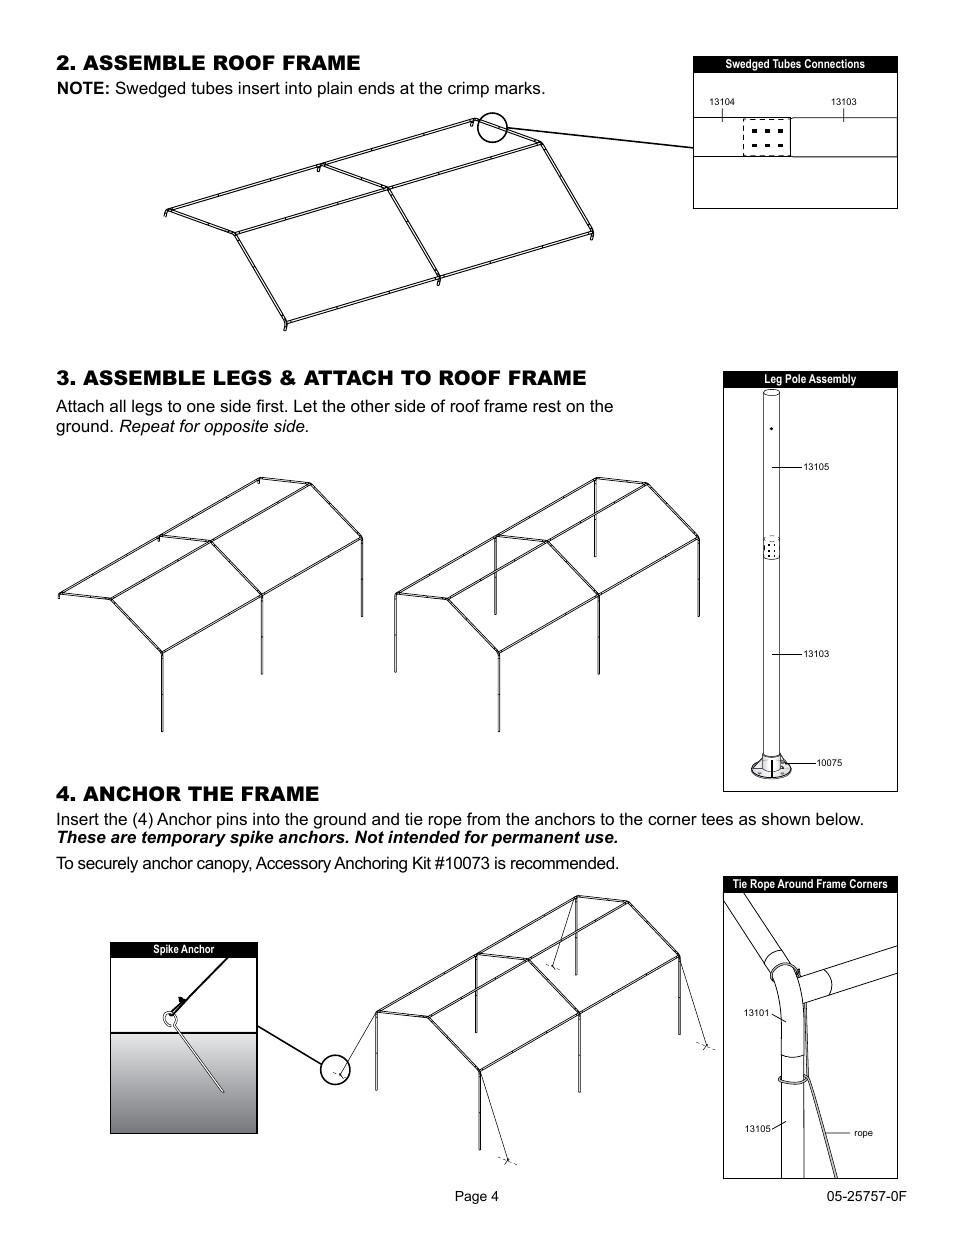 Assemble roof frame, Assemble legs & attach to roof frame ...